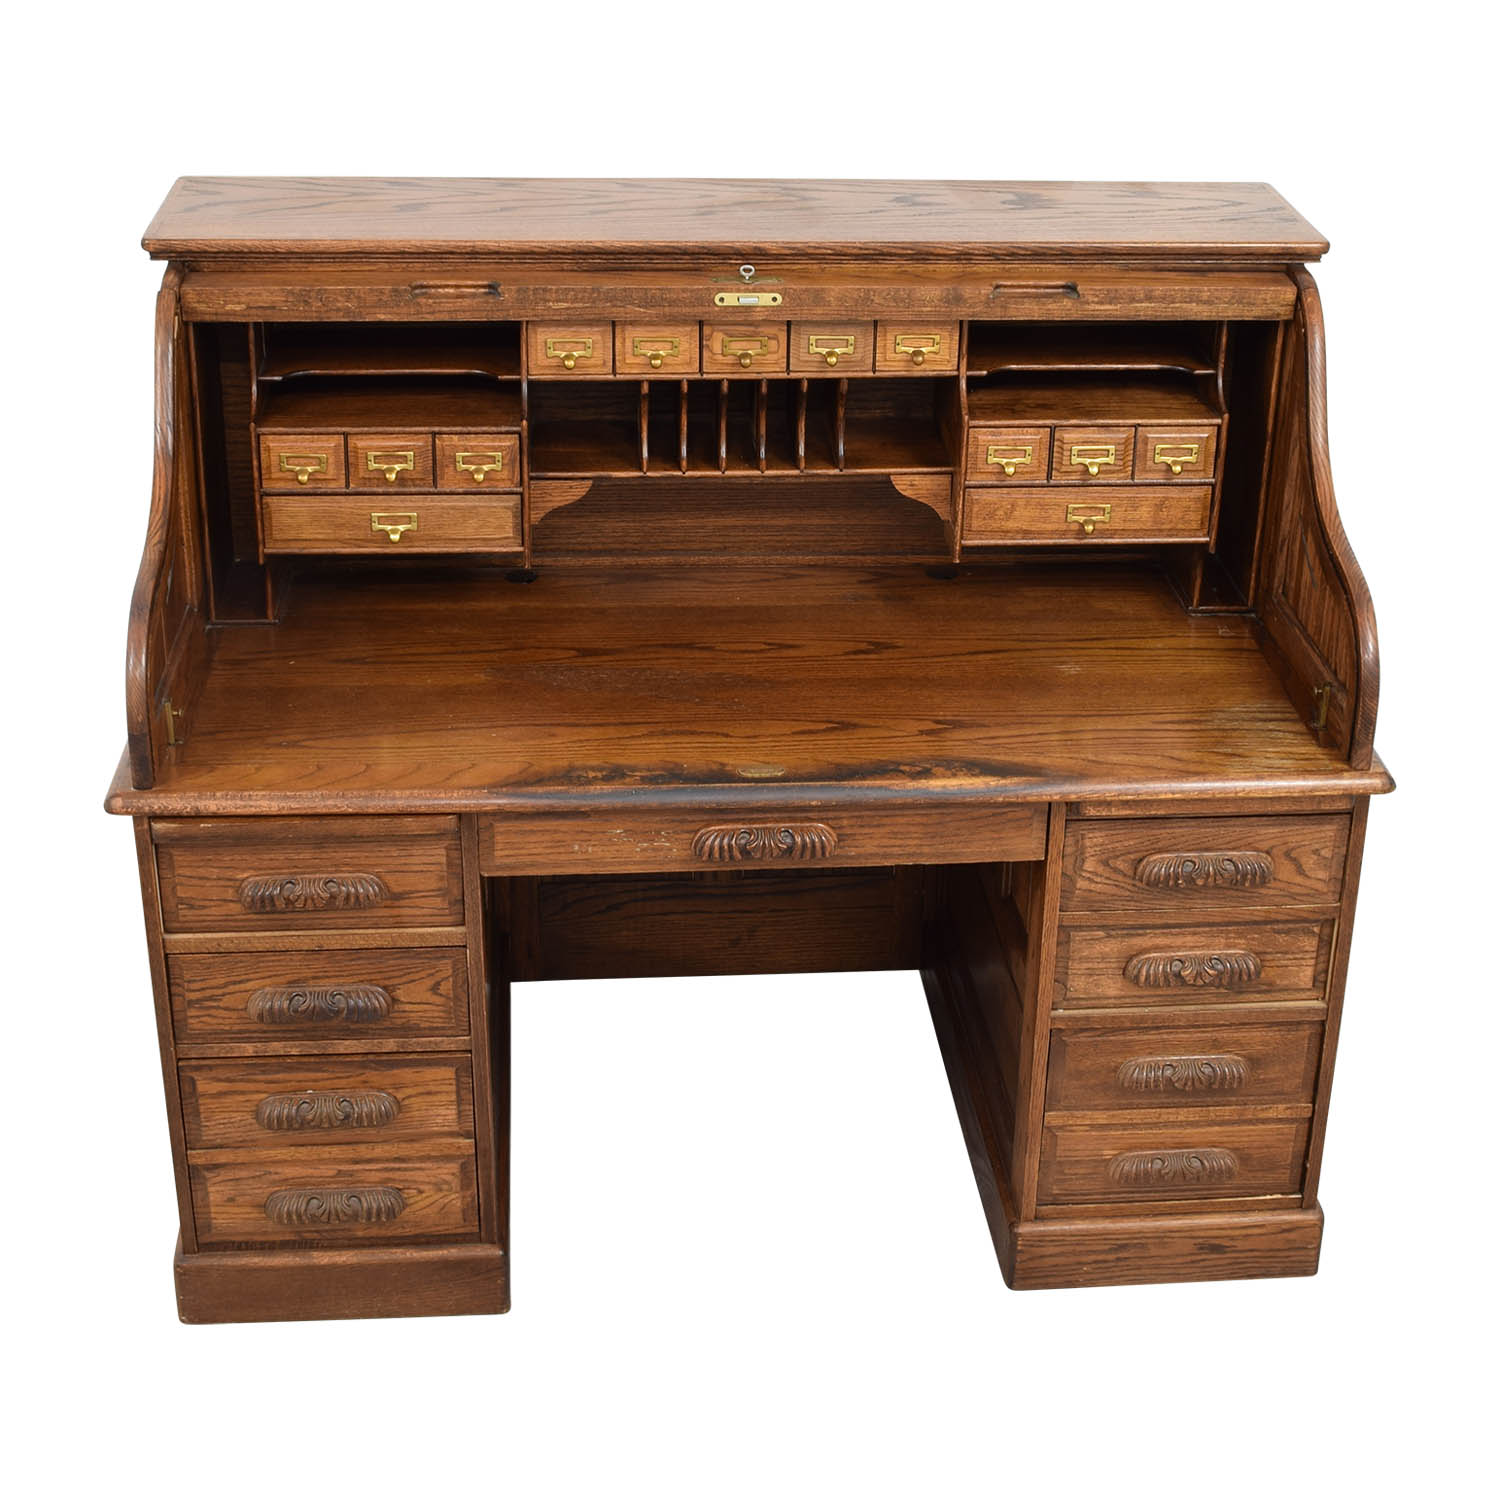 Used Desk For Sale >> 84 Off Antique Oak Roll Top Desk Tables